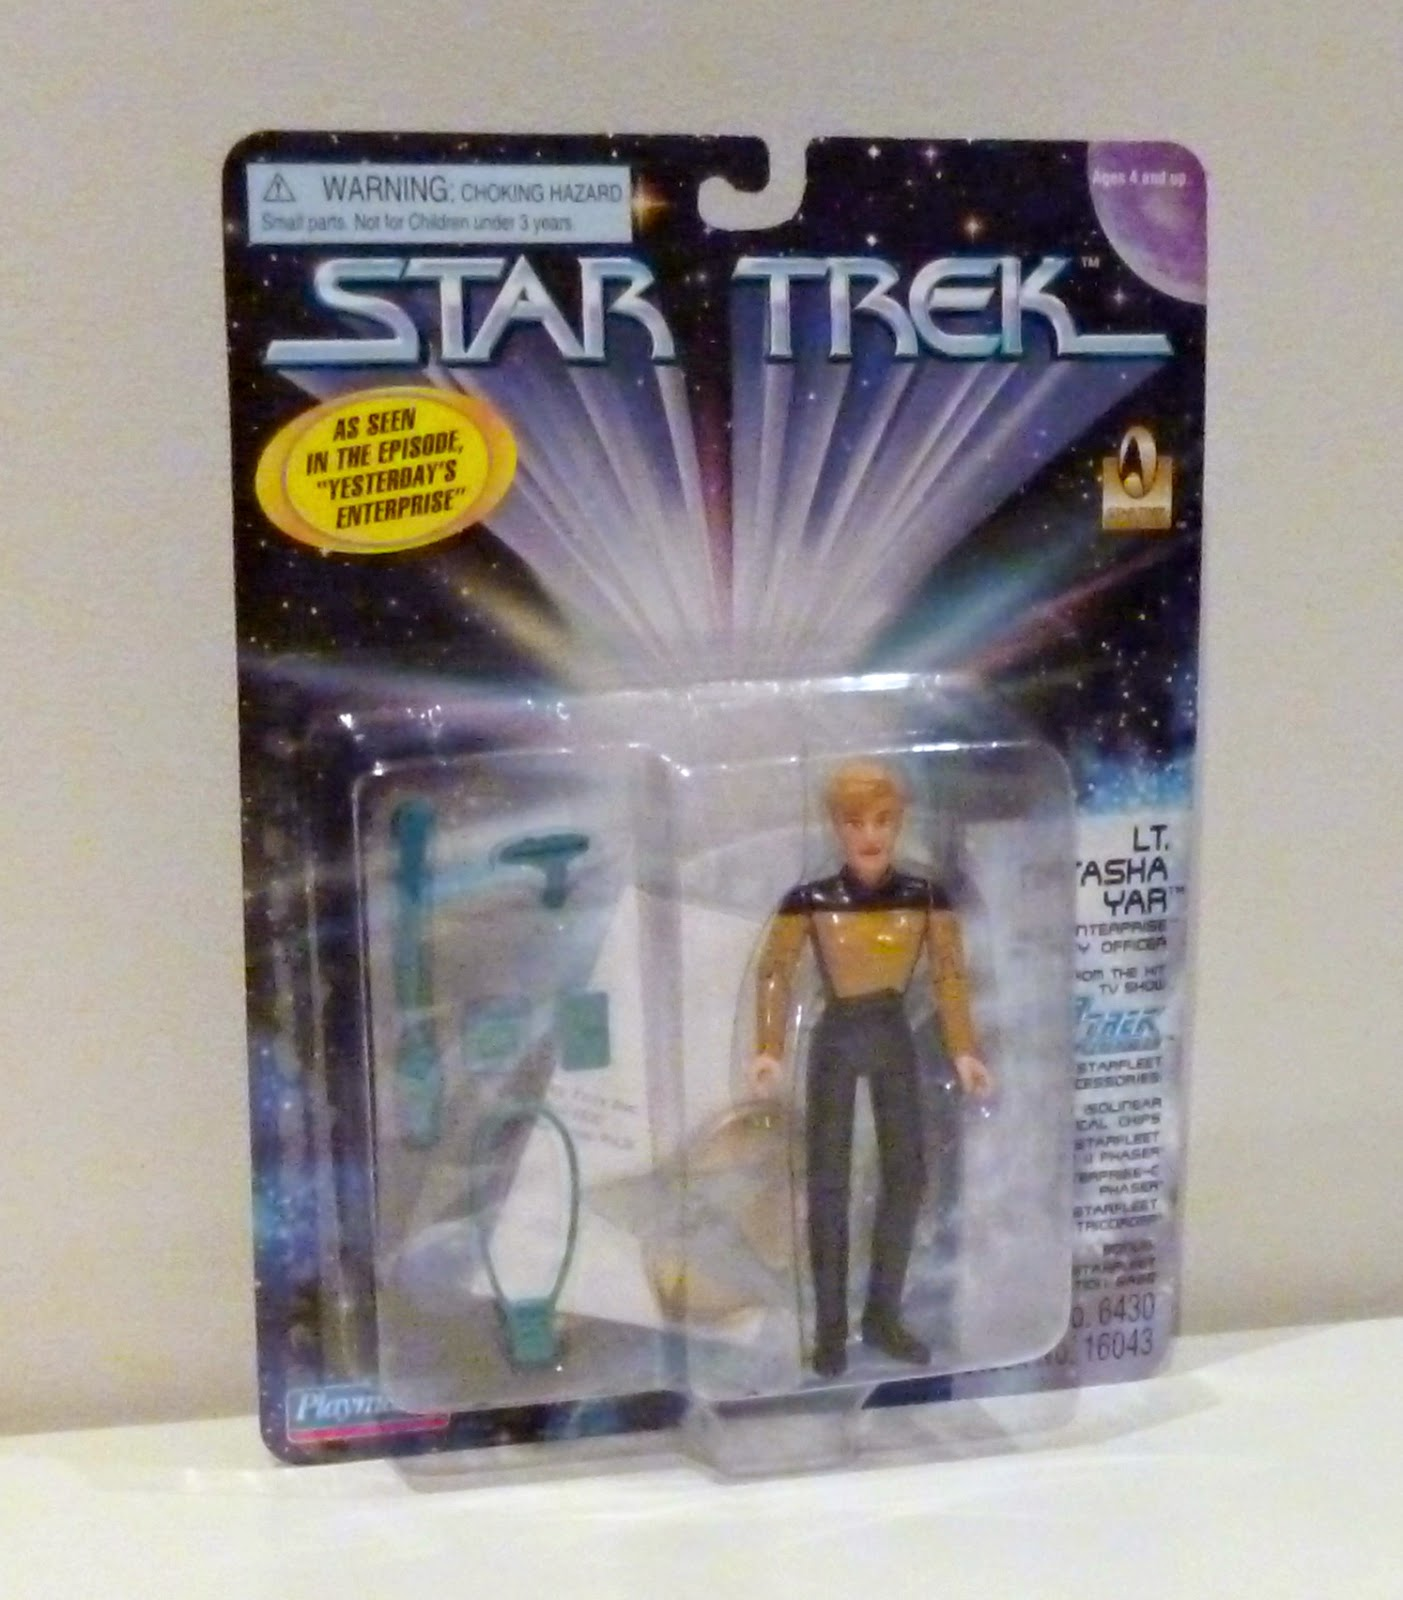 Star Trek Tasha Yar 1701 Playmates Action Figure